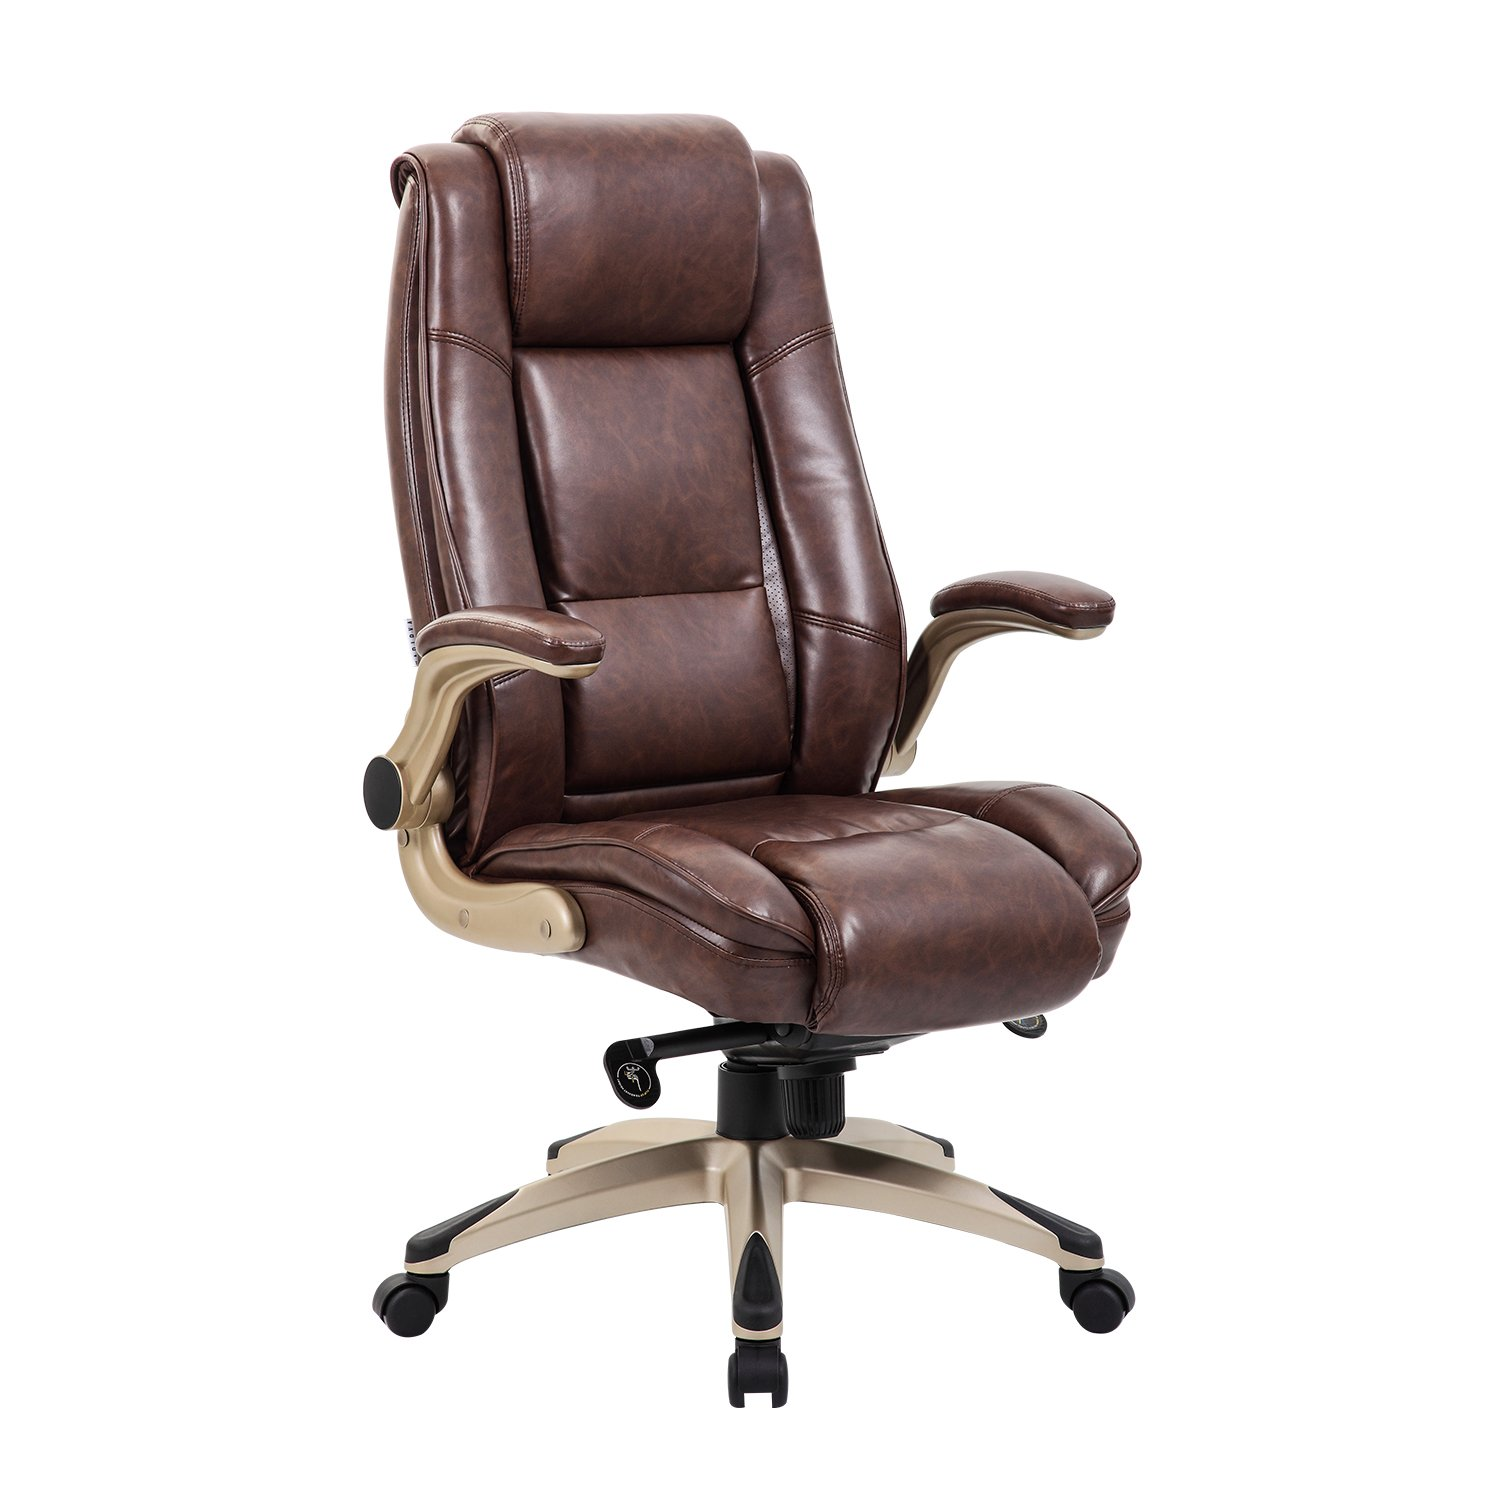 LCH High Back Leather Office Chair - Executive Computer Desk Chair with Adjustable Angle Recline Locking System and Flip Up Arms, Thick Padding For Comfort and Ergonomic Design For Lumbar Support by LCH